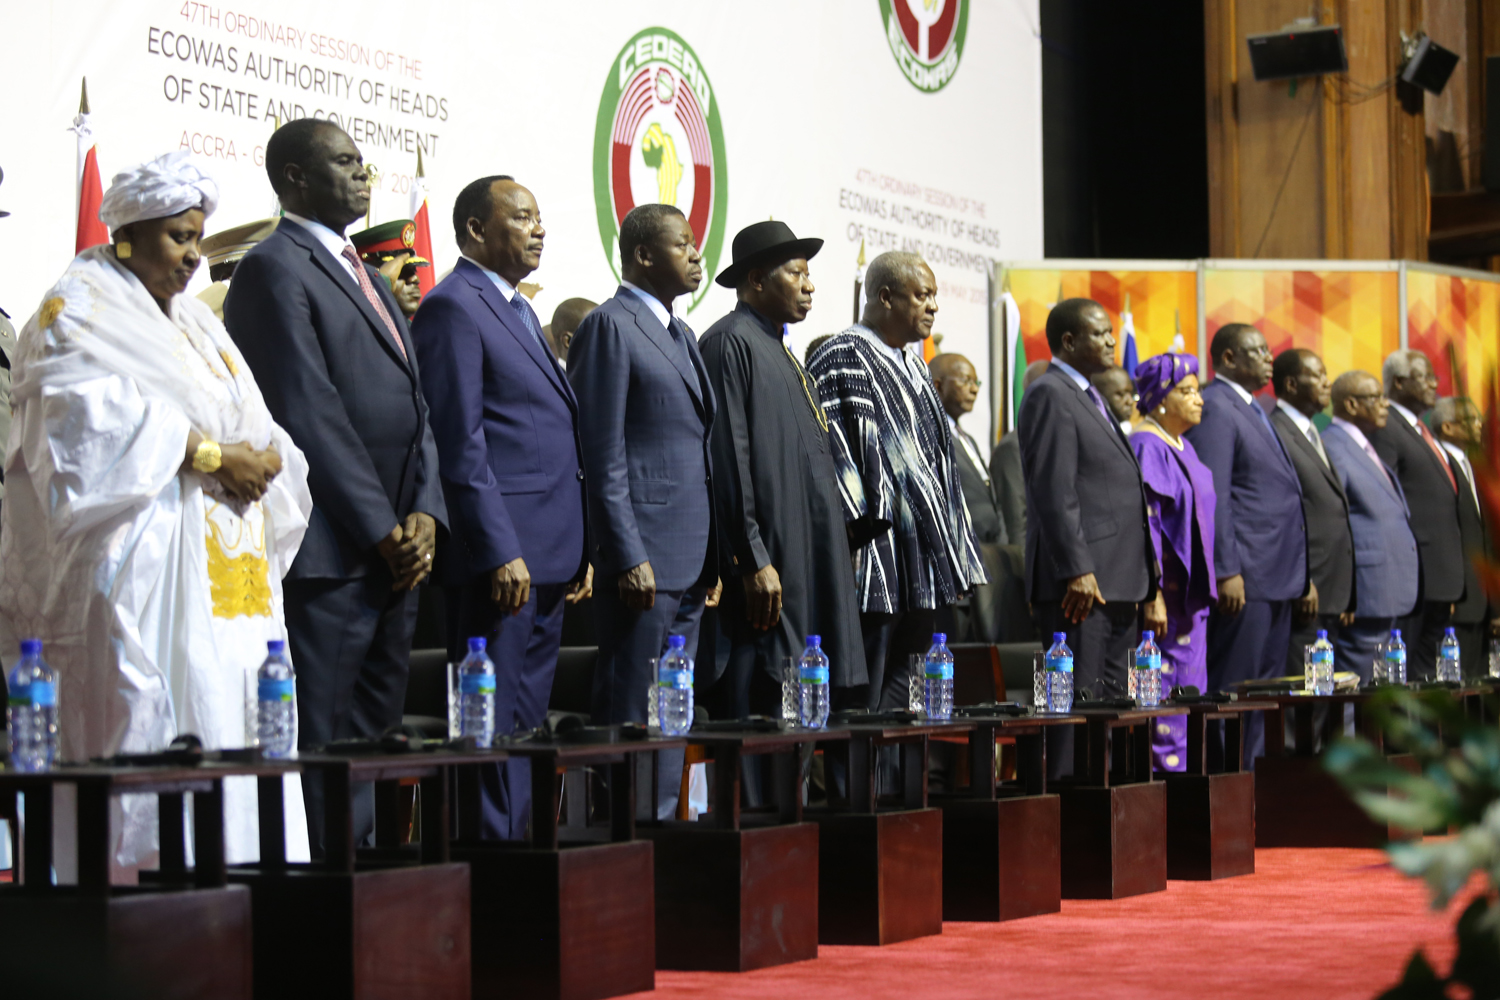 ECOWAS-leaders.jpg